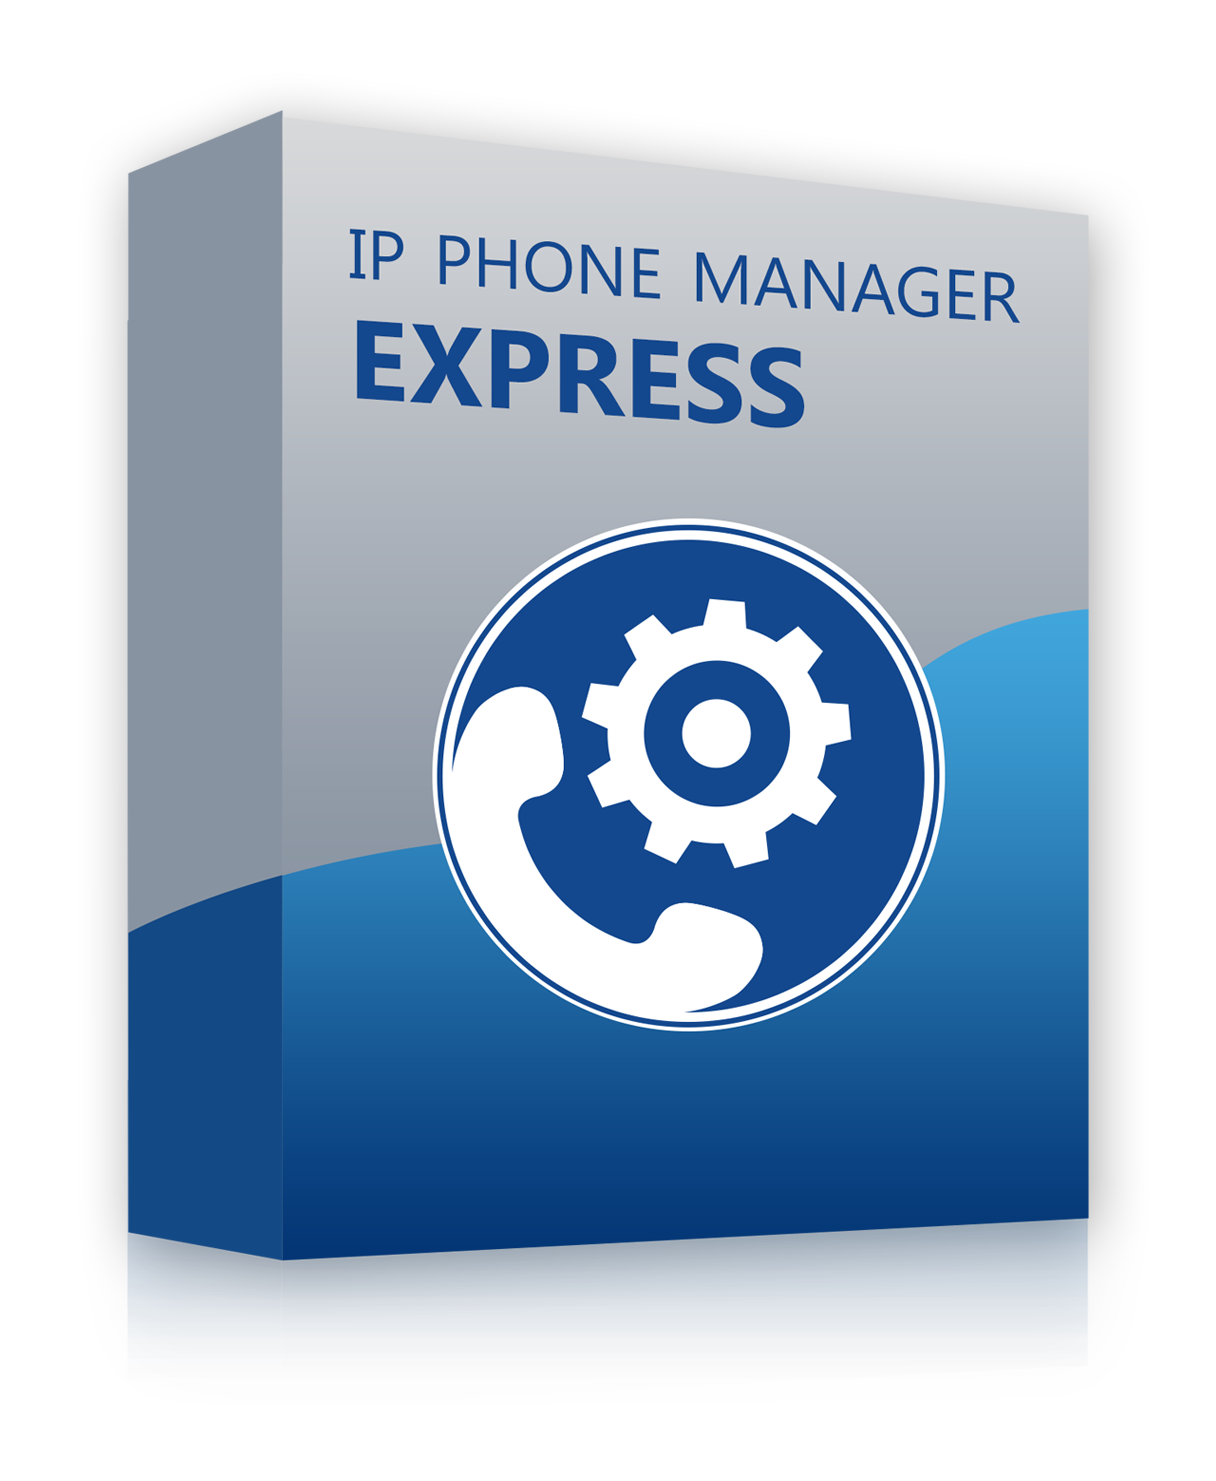 IP Phone Manager Express